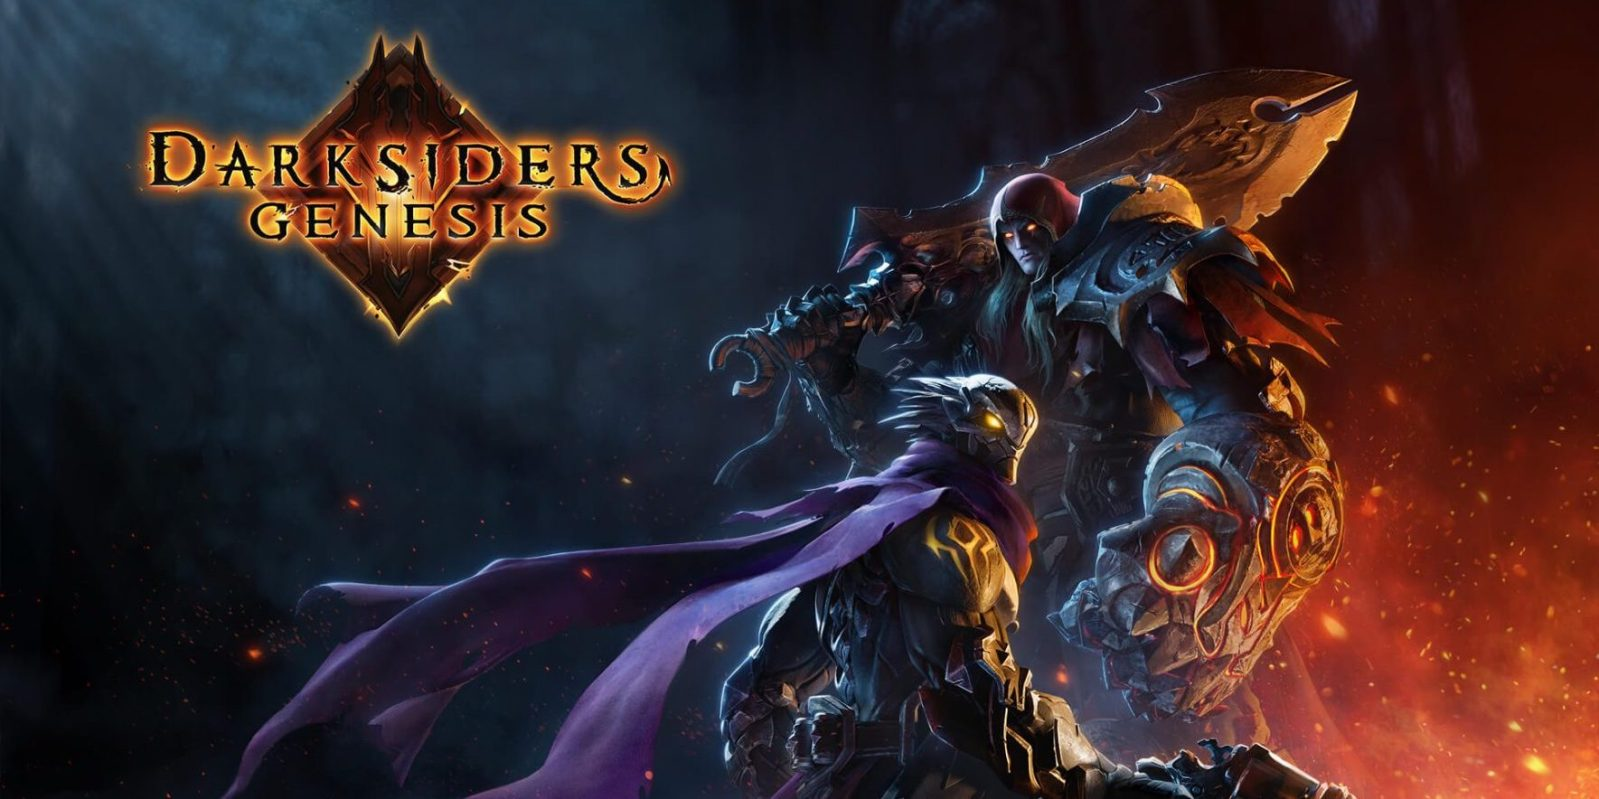 New Darksiders Genesis trailer hits with Stadia, PC, and console release date